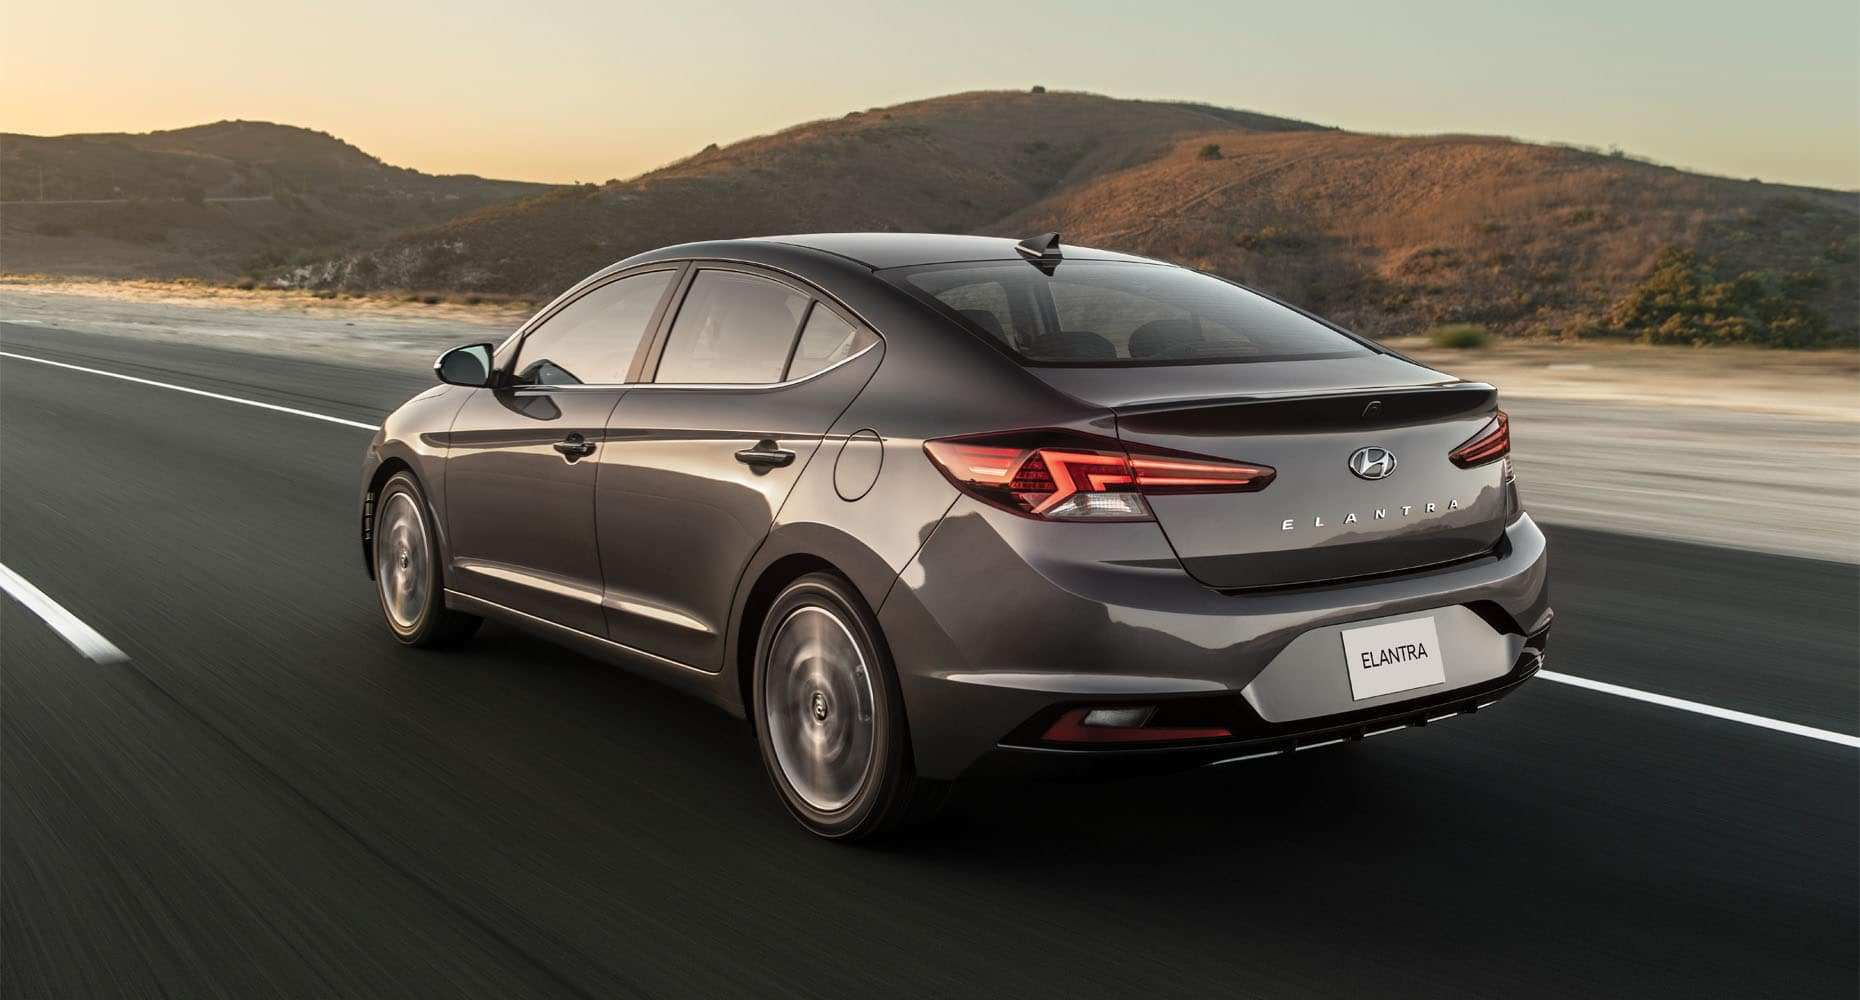 74 All New 2019 Hyundai Elantra Spy Shoot